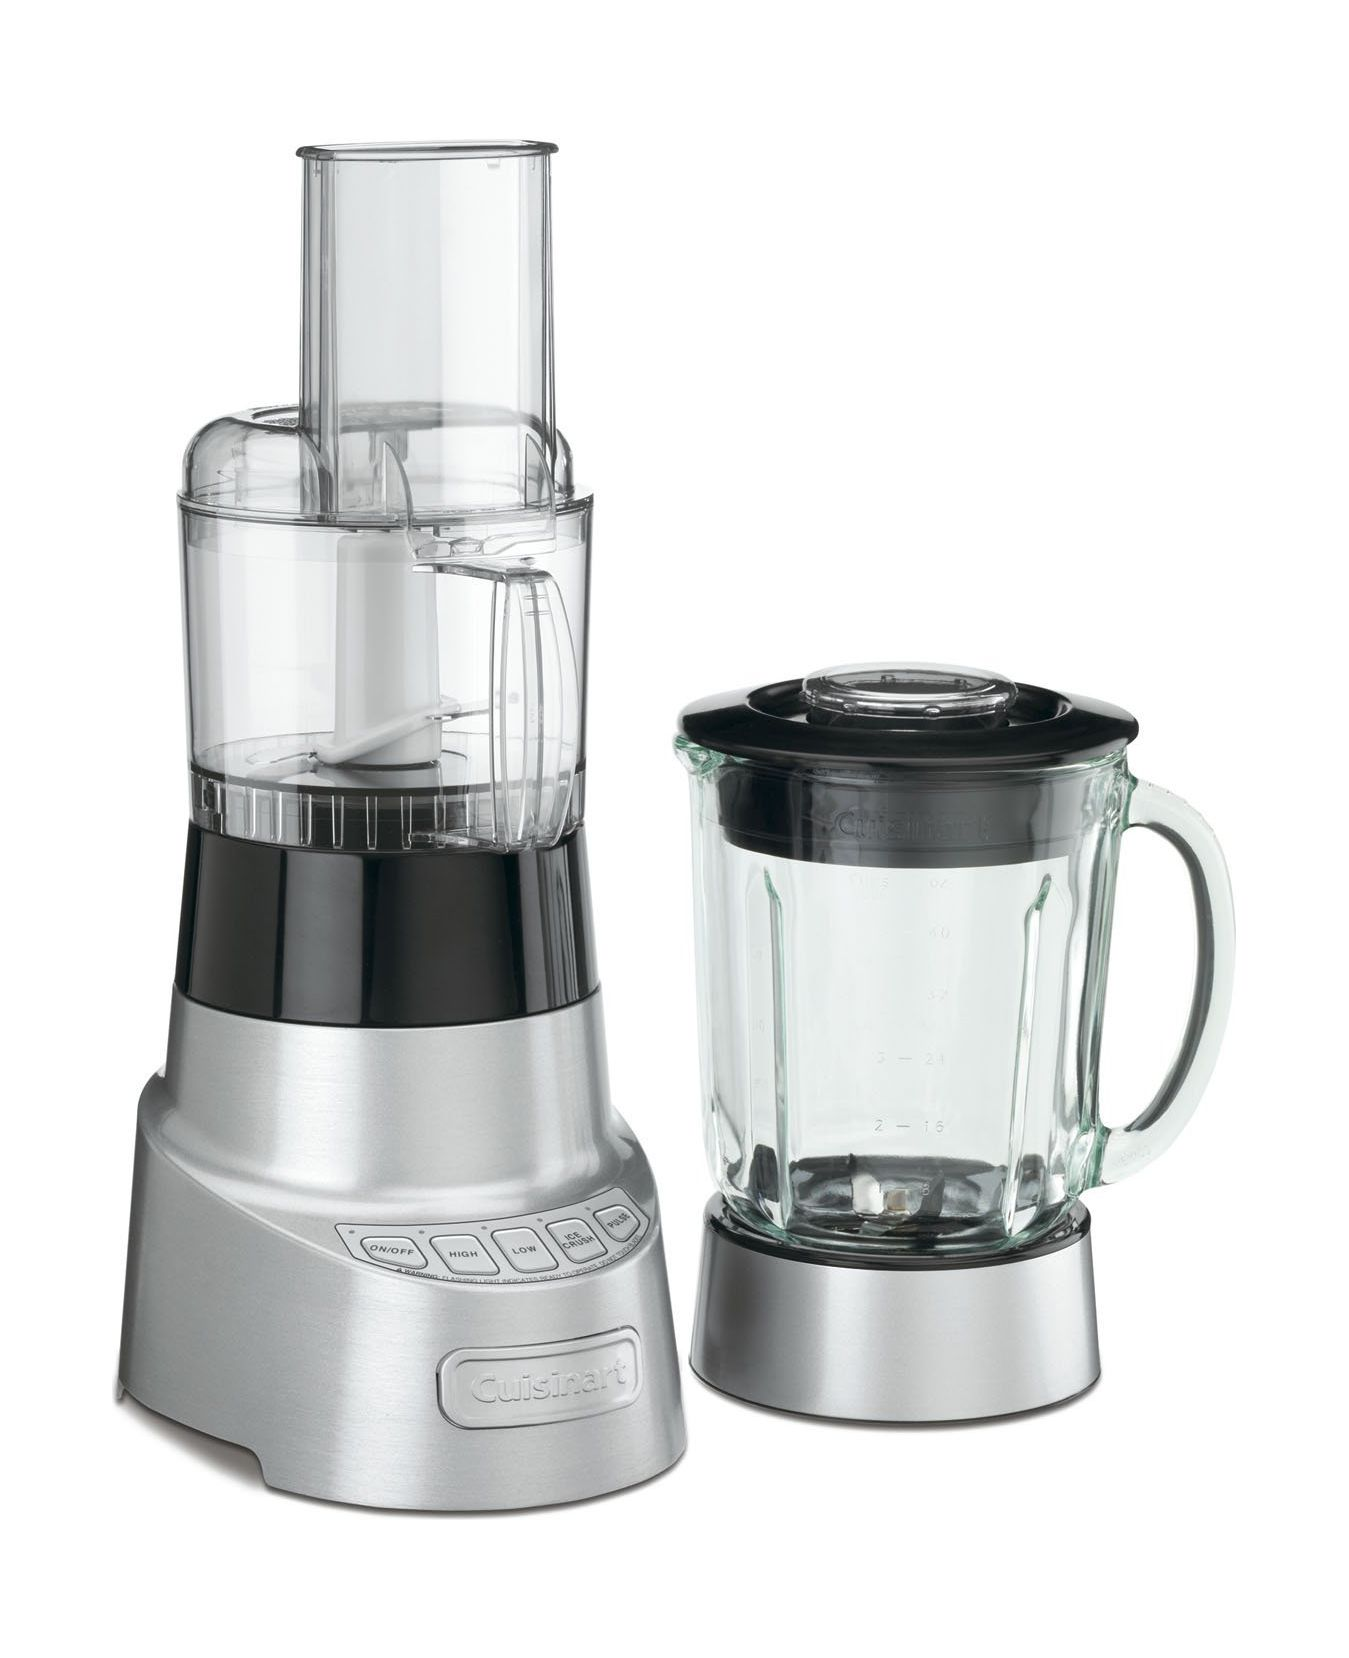 Smartpower Deluxe Blender Food Processor